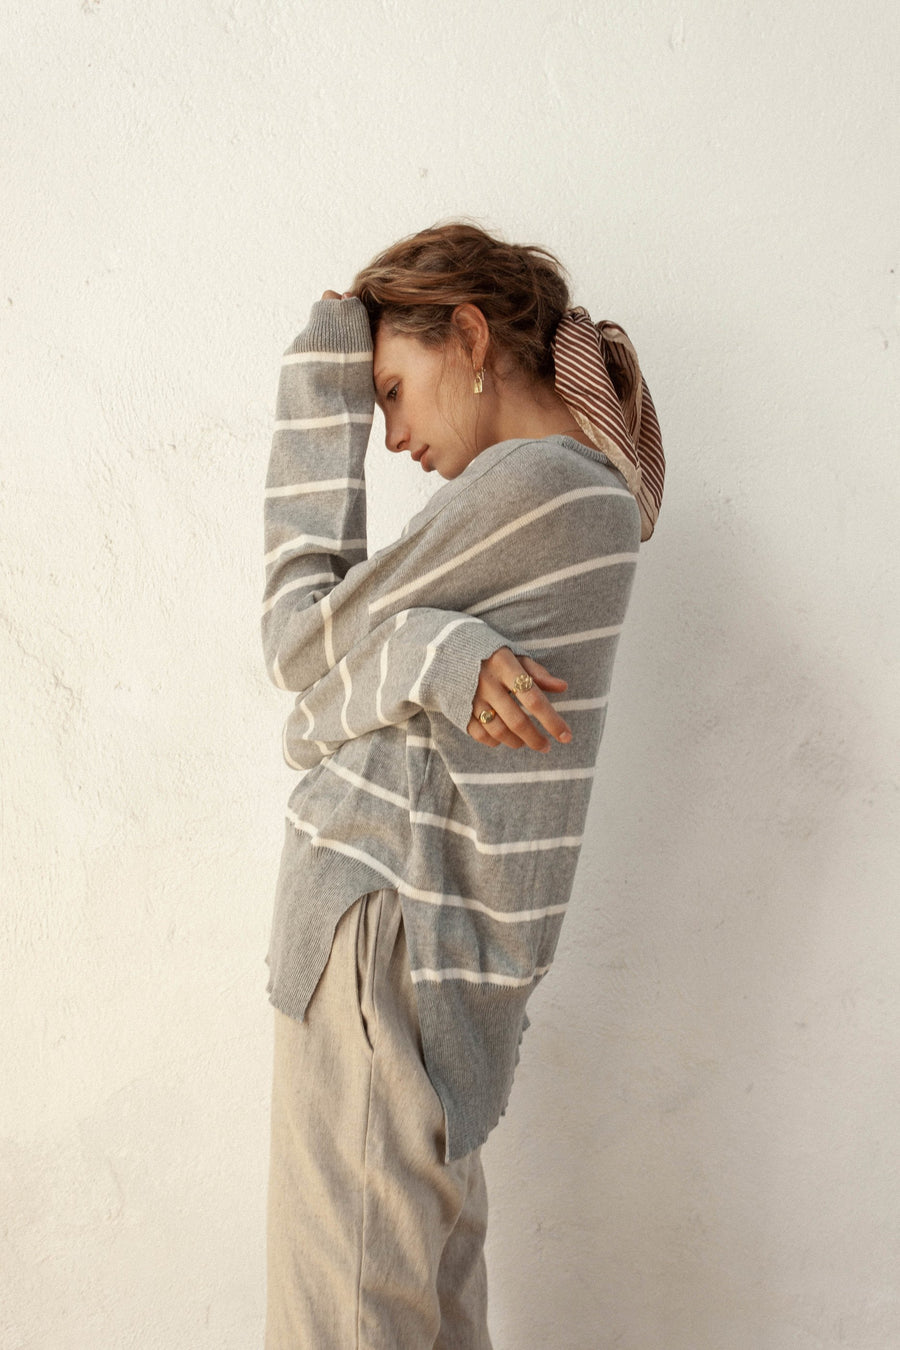 Ruben Light Sweater - Silver & Ivory Stripe - 100% Cotton Gauze